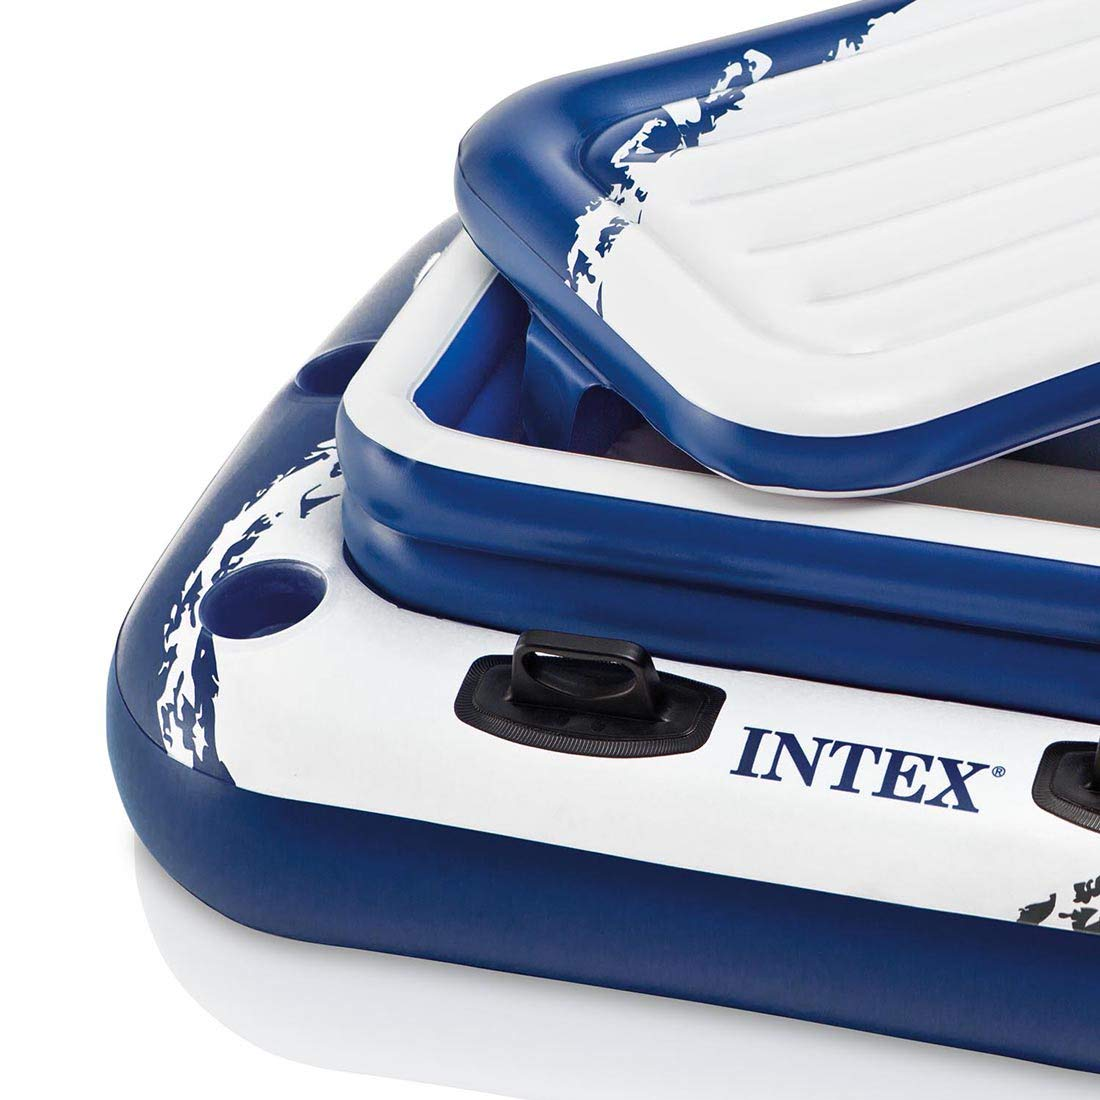 Intex River Run Inflatable Lounge Tube, 4 Pack & Inflatable Cooler Float, 2 Pack by Intex (Image #4)